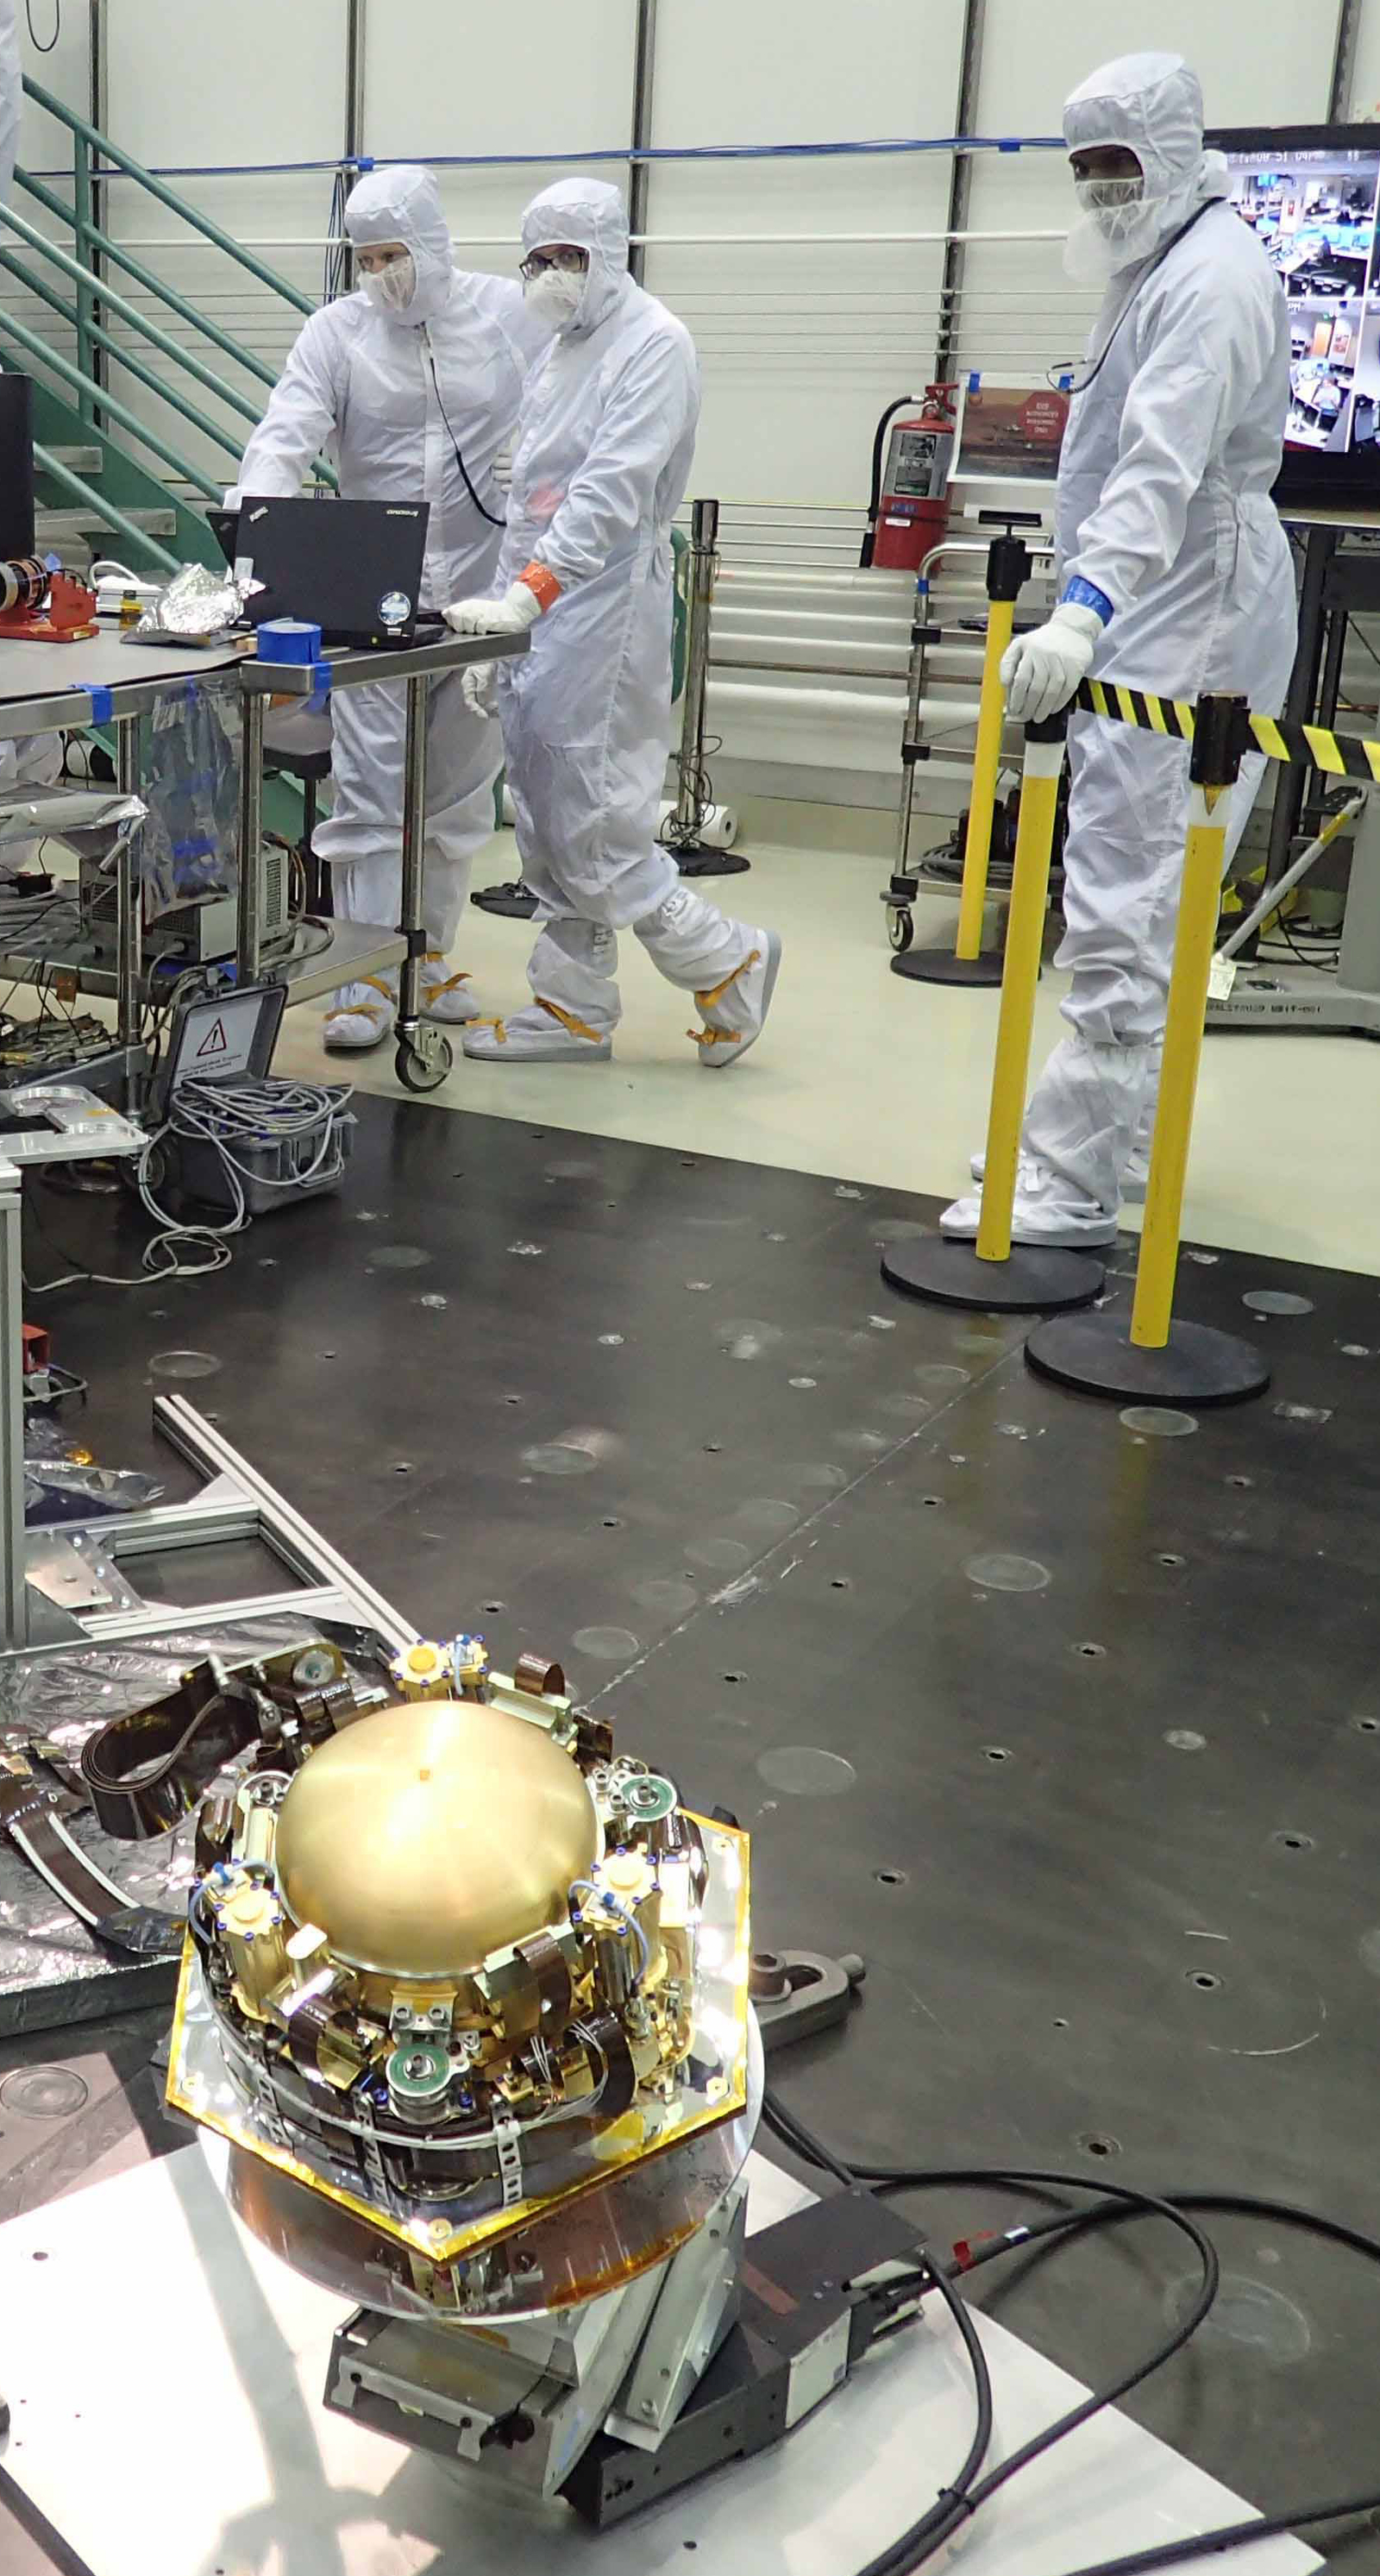 The Seismic Experiment for Interior Structure (SEIS) instrument for NASA's InSight mission to Mars undergoes a checkout in this photo taken July 20, 2017, in a Lockheed Martin clean room facility in Colorado. The SEIS was provided by France's national space agency (CNES).